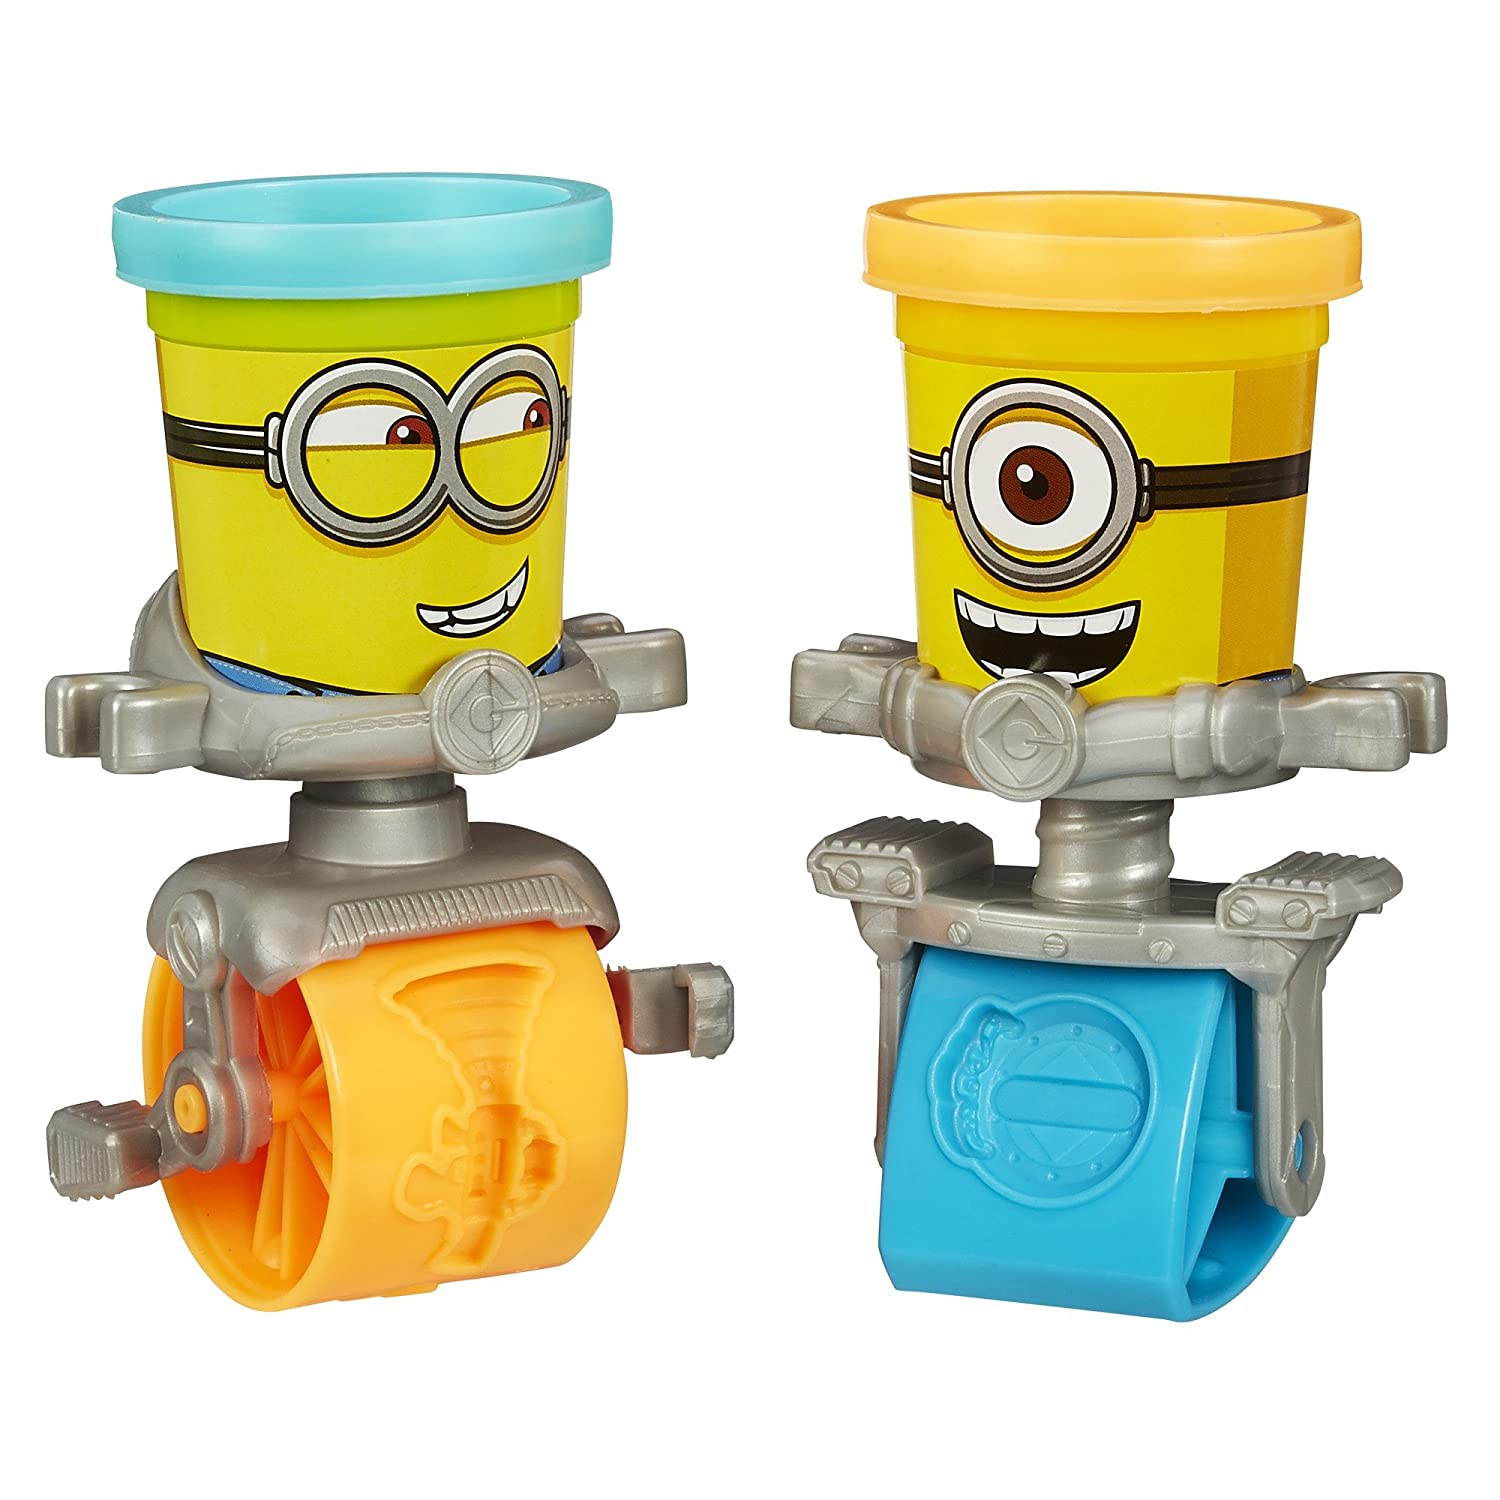 Play-Doh Featuring Despicable Me Minions Stamp and Roll Set B0788